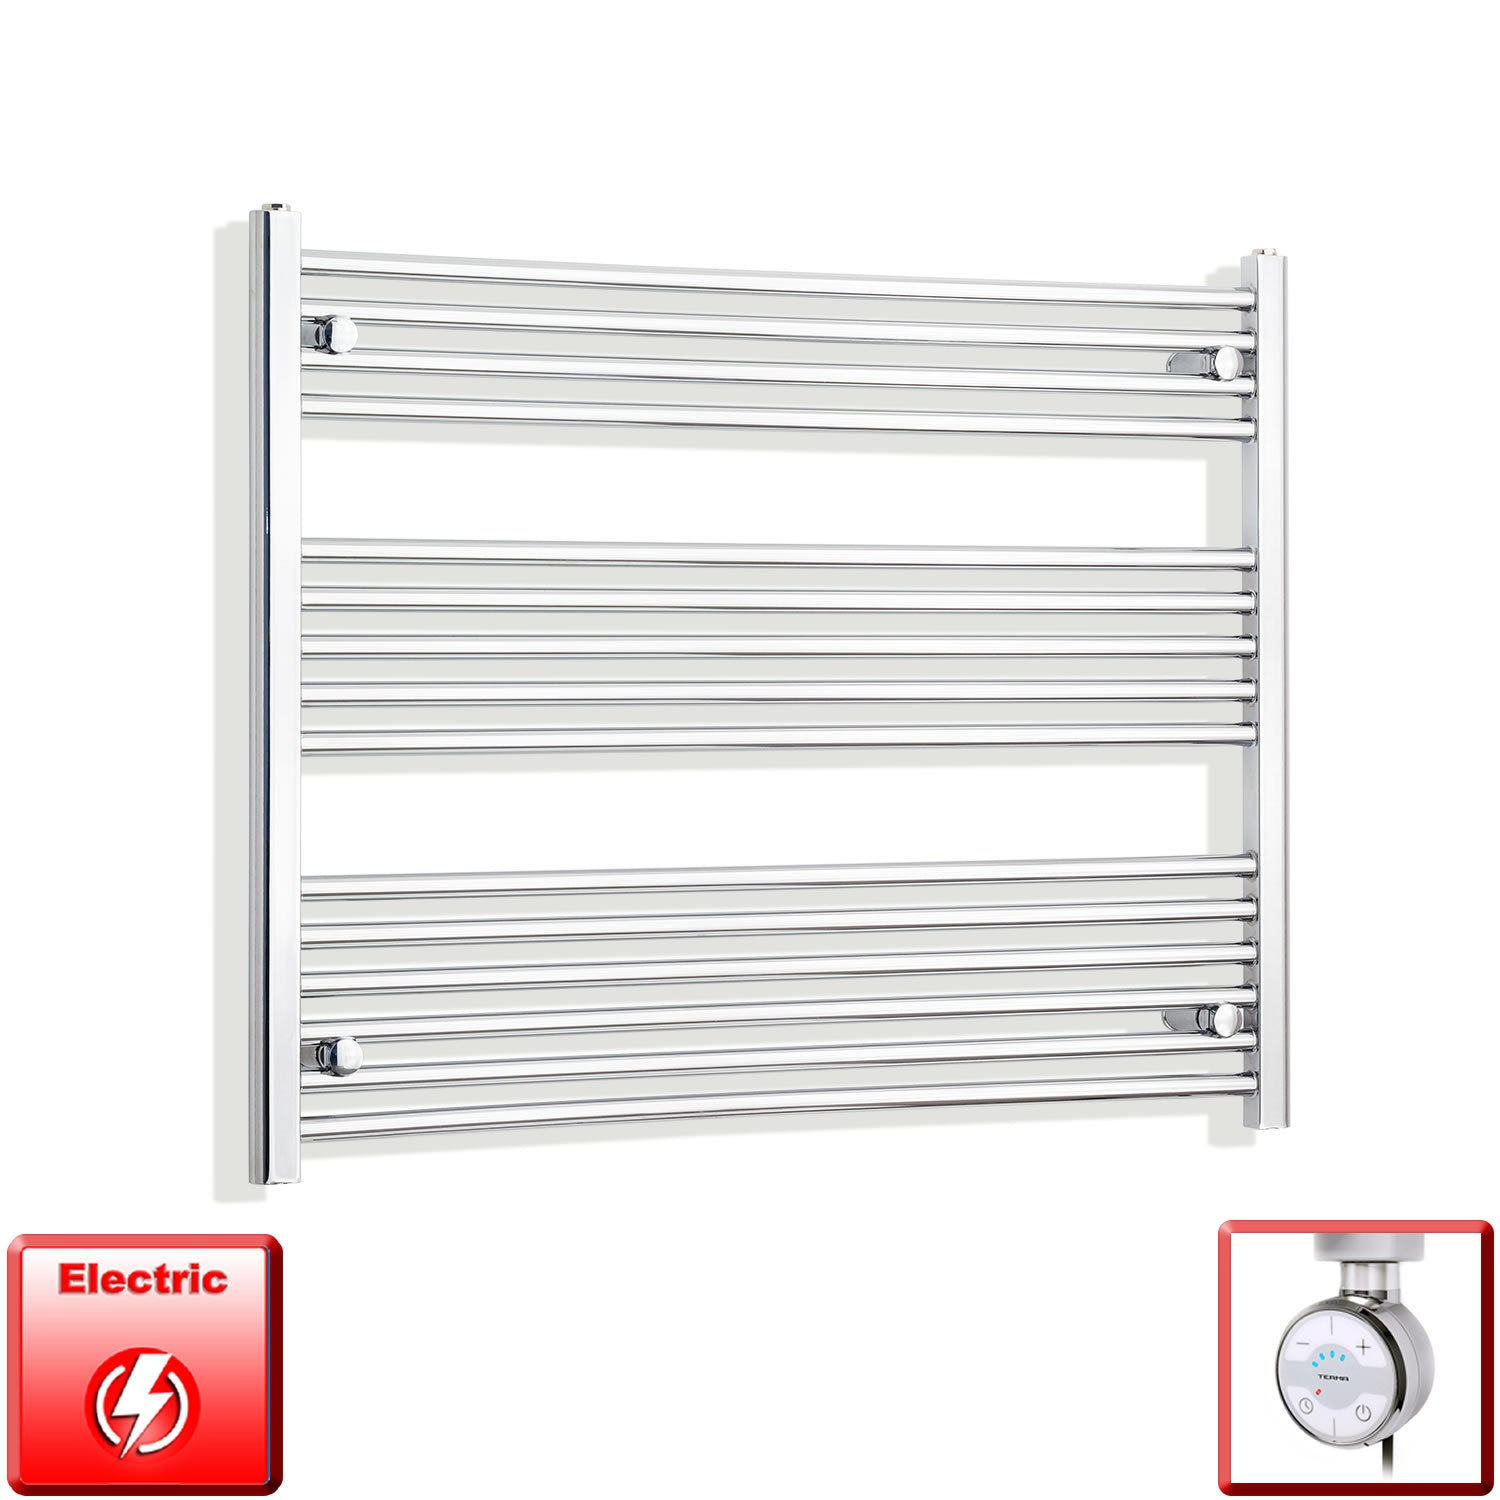 950mm Wide 800mm High Pre-Filled Chrome Electric Towel Rail Radiator With Thermostatic MOA Element